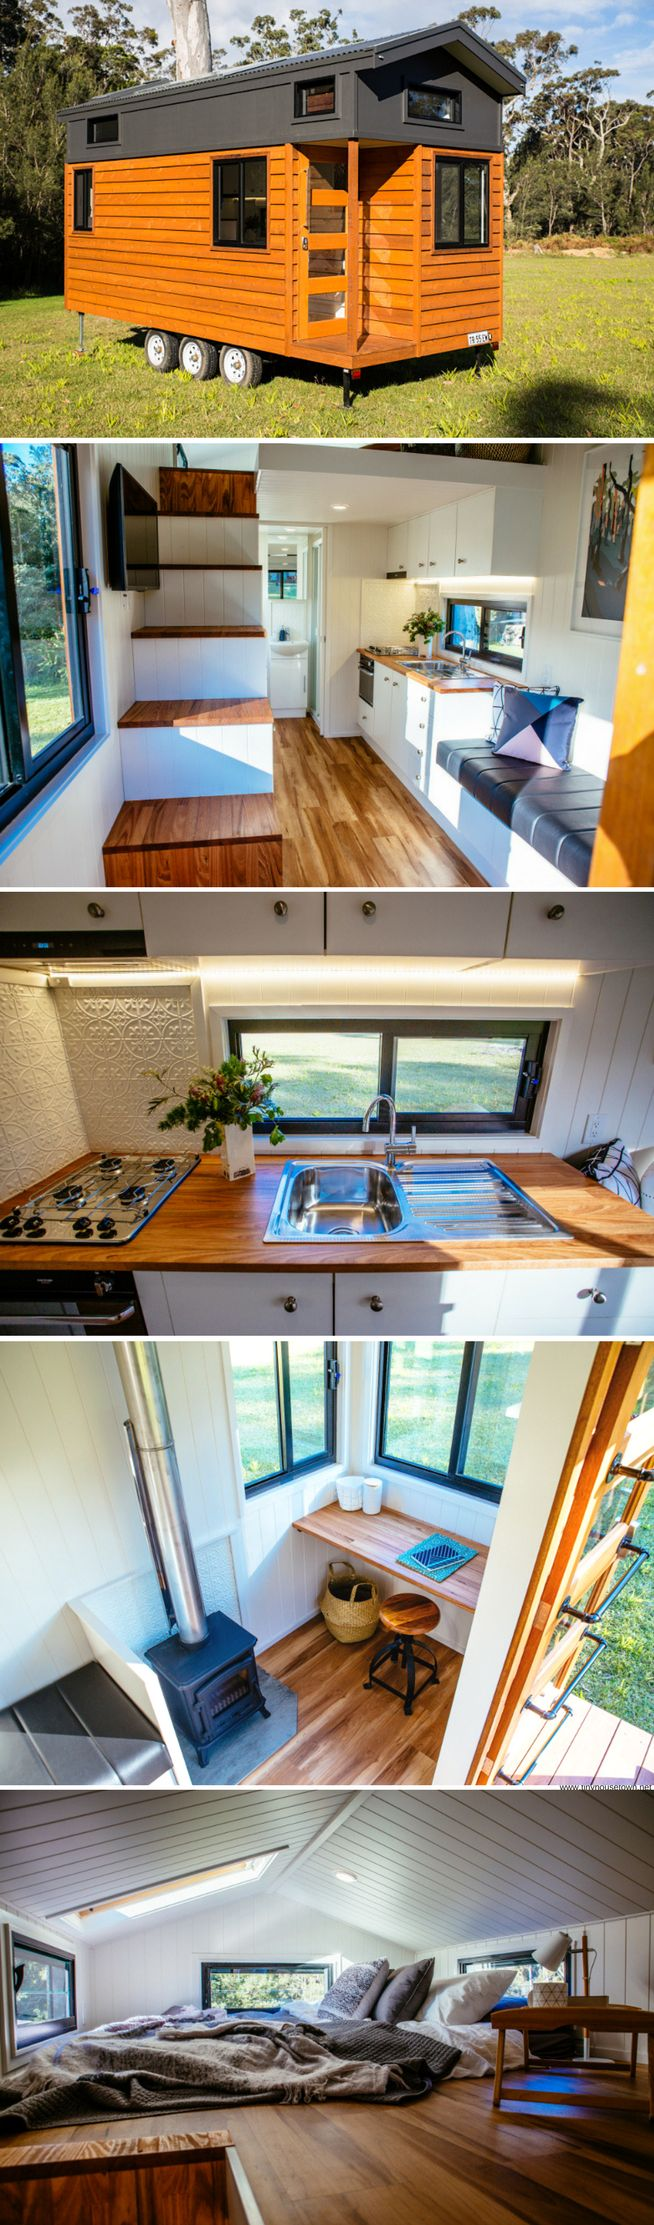 The Graduate Series tiny house from Designer Eco Tiny Homes